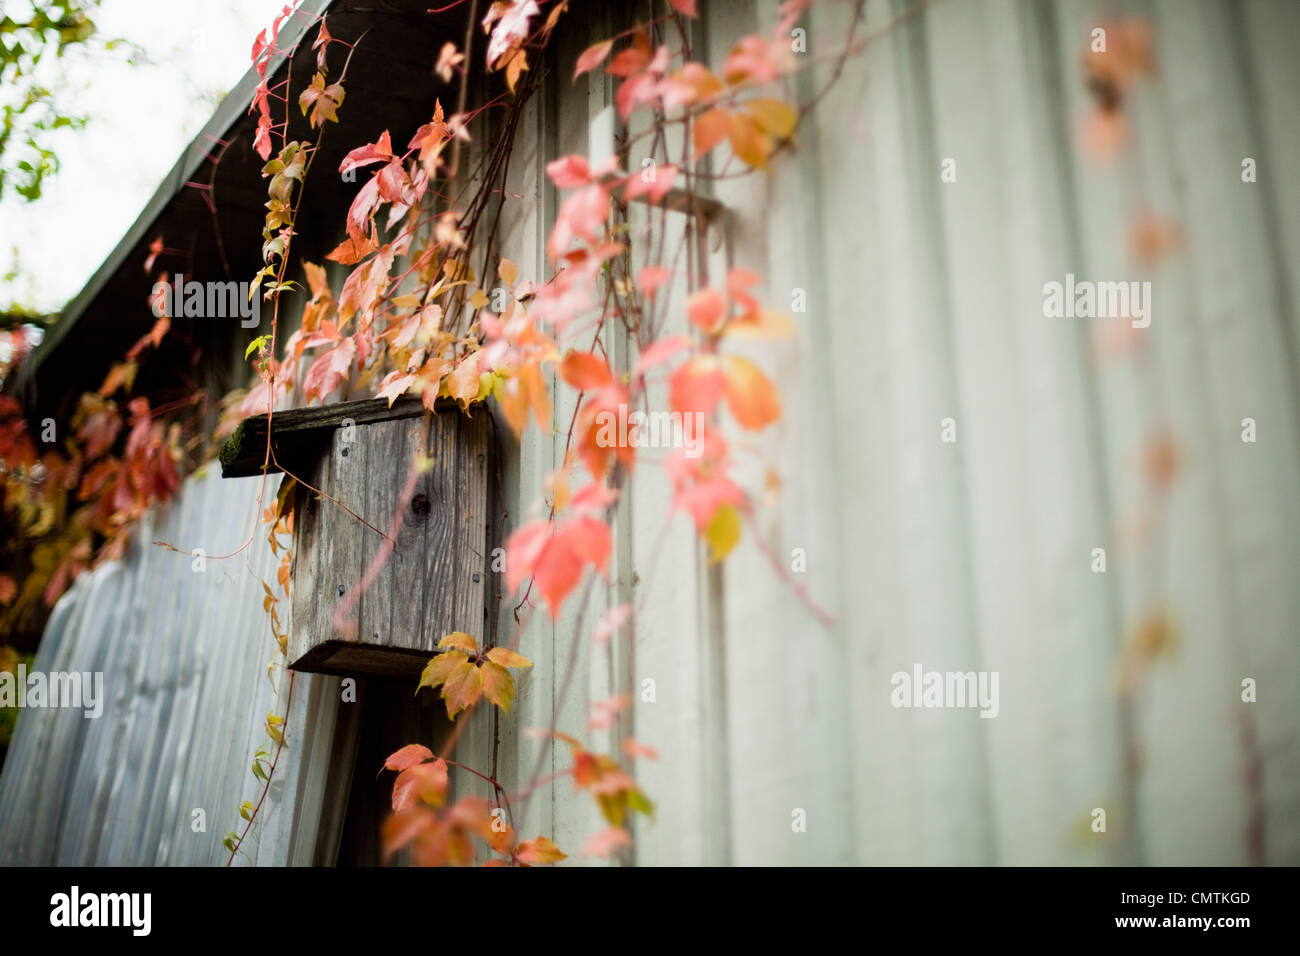 Nesting box surrounded by autumn leaves - Stock Image